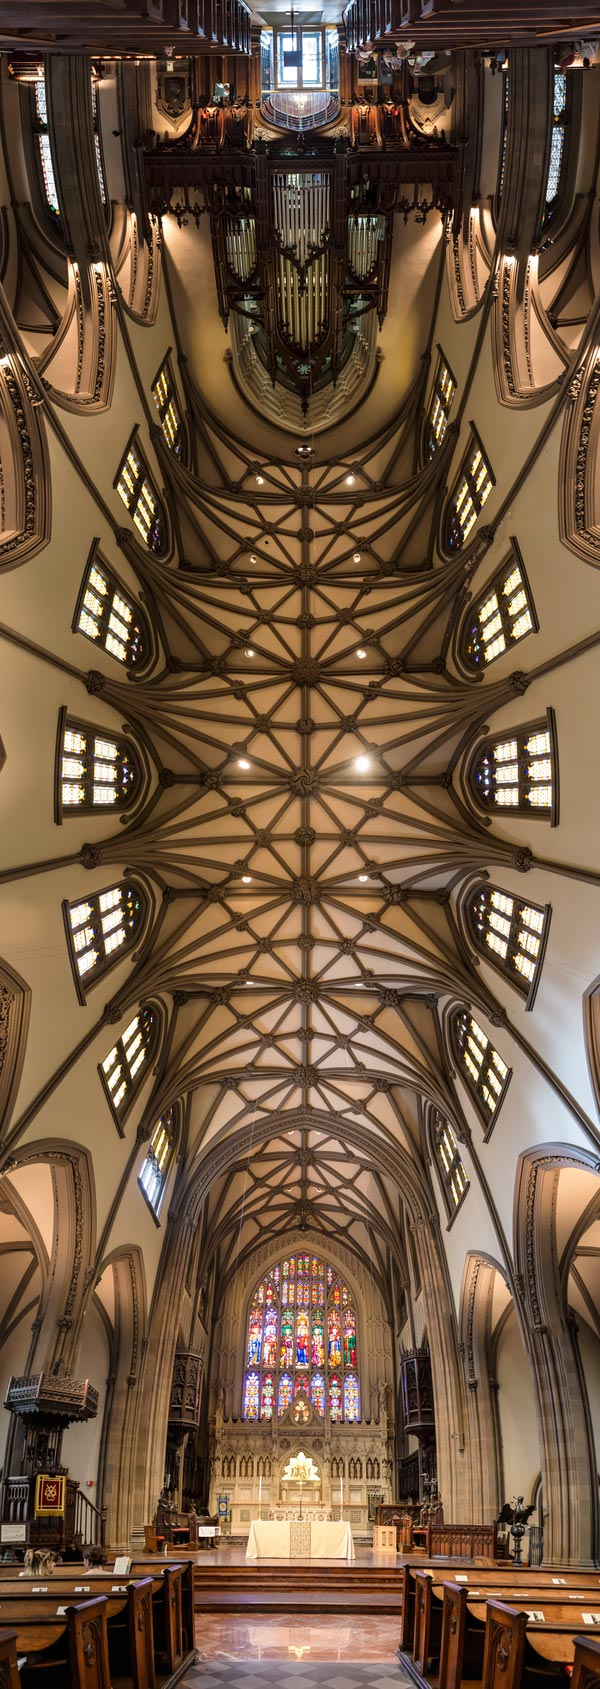 vertical-panoramas-of-church-ceilings-3